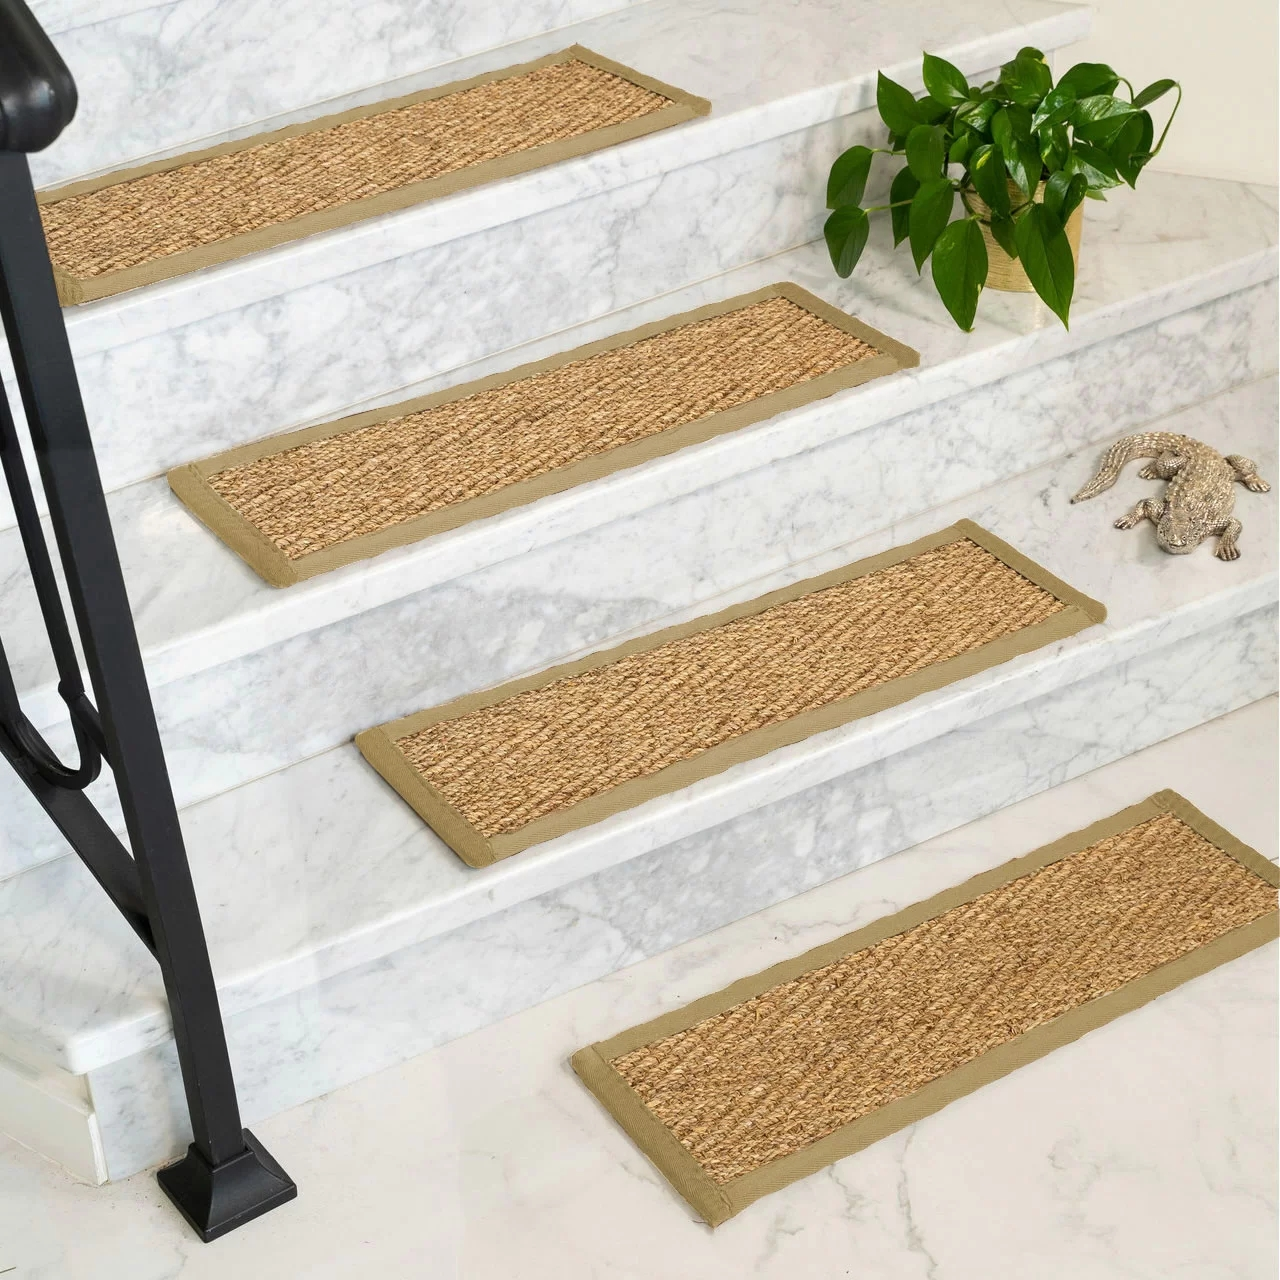 Rosecliff Heights Soperton Seagrass Carpet Stair Tread Reviews   Stair Treads For Carpeted Steps   Carpet Protectors   Skid Resistant   Bullnose Carpet   Anti Slip Stair   Wood